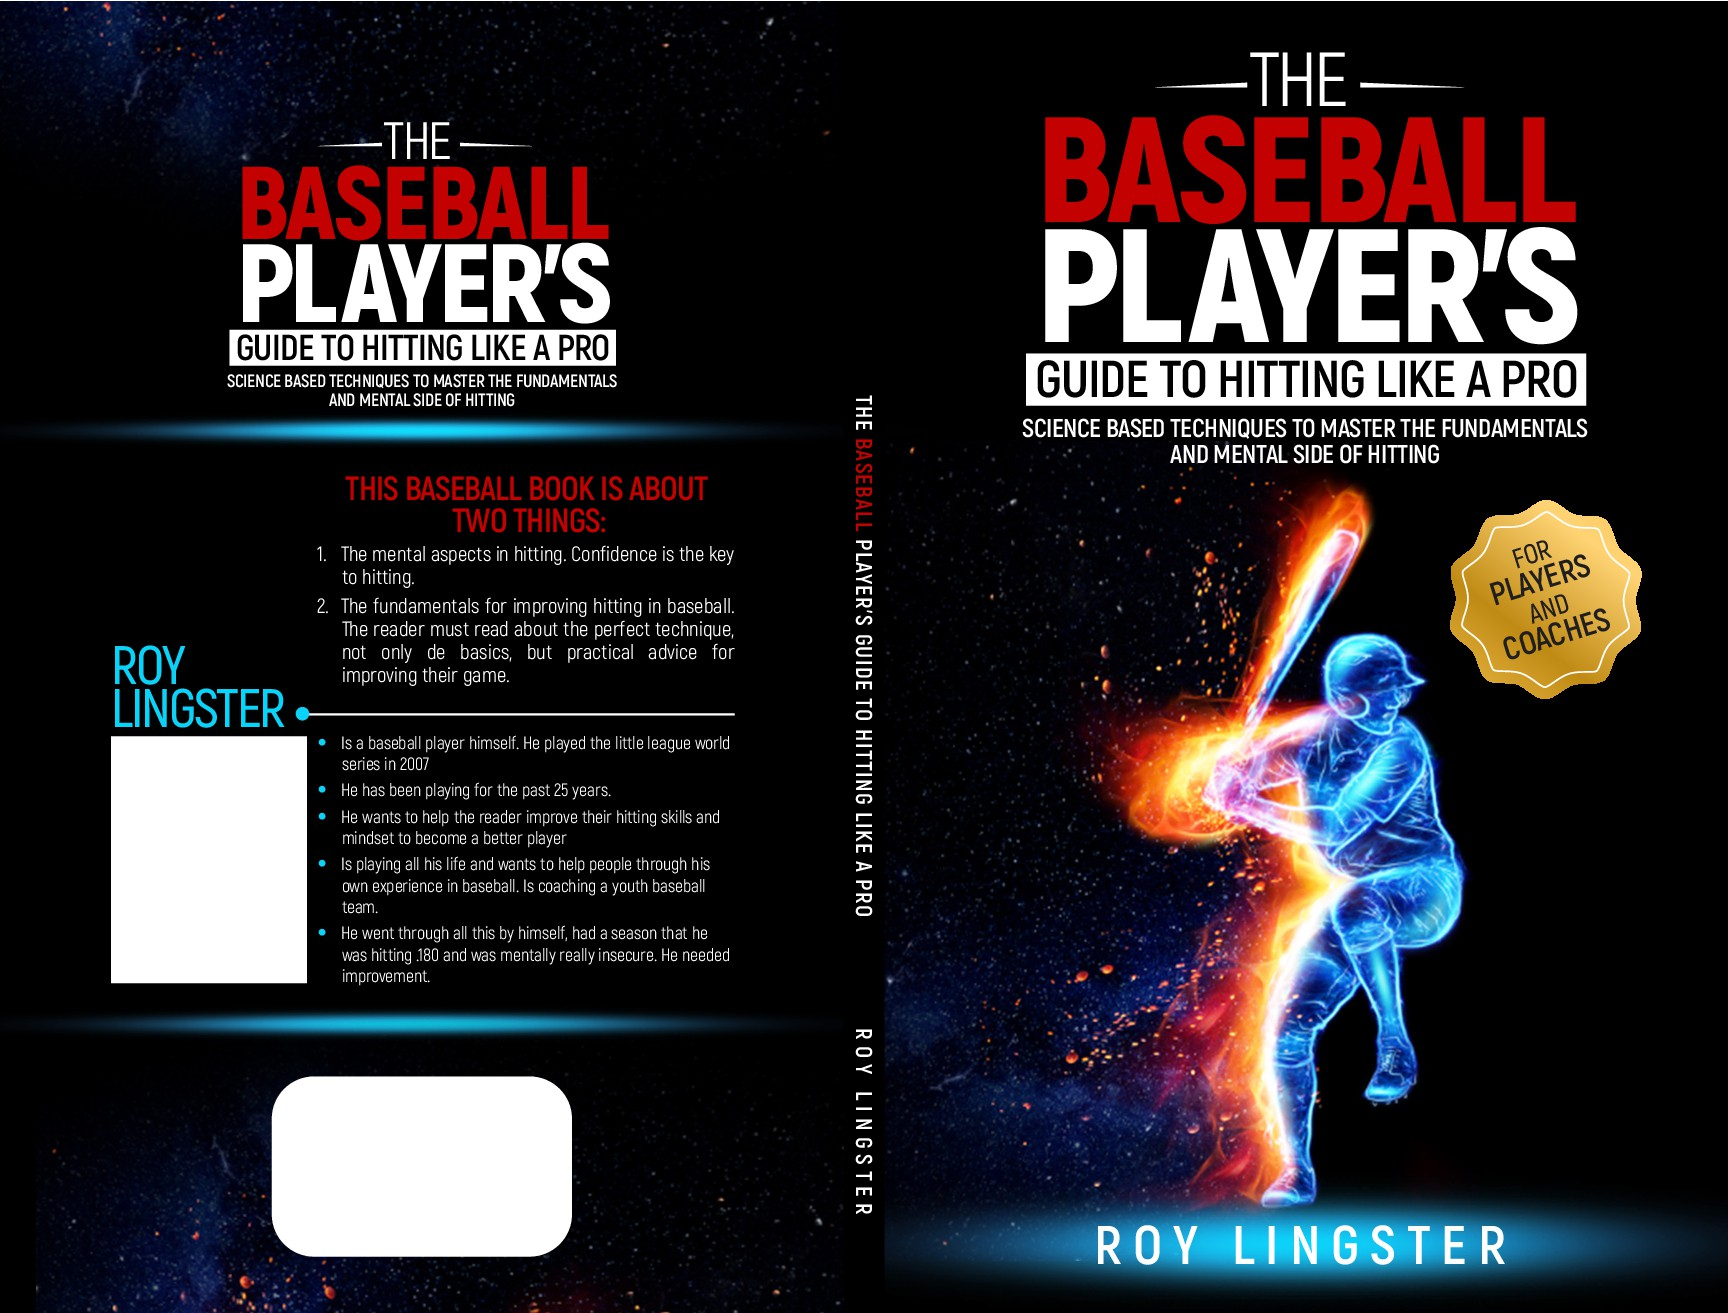 The Baseball Player's Guide To Hitting Like A Pro